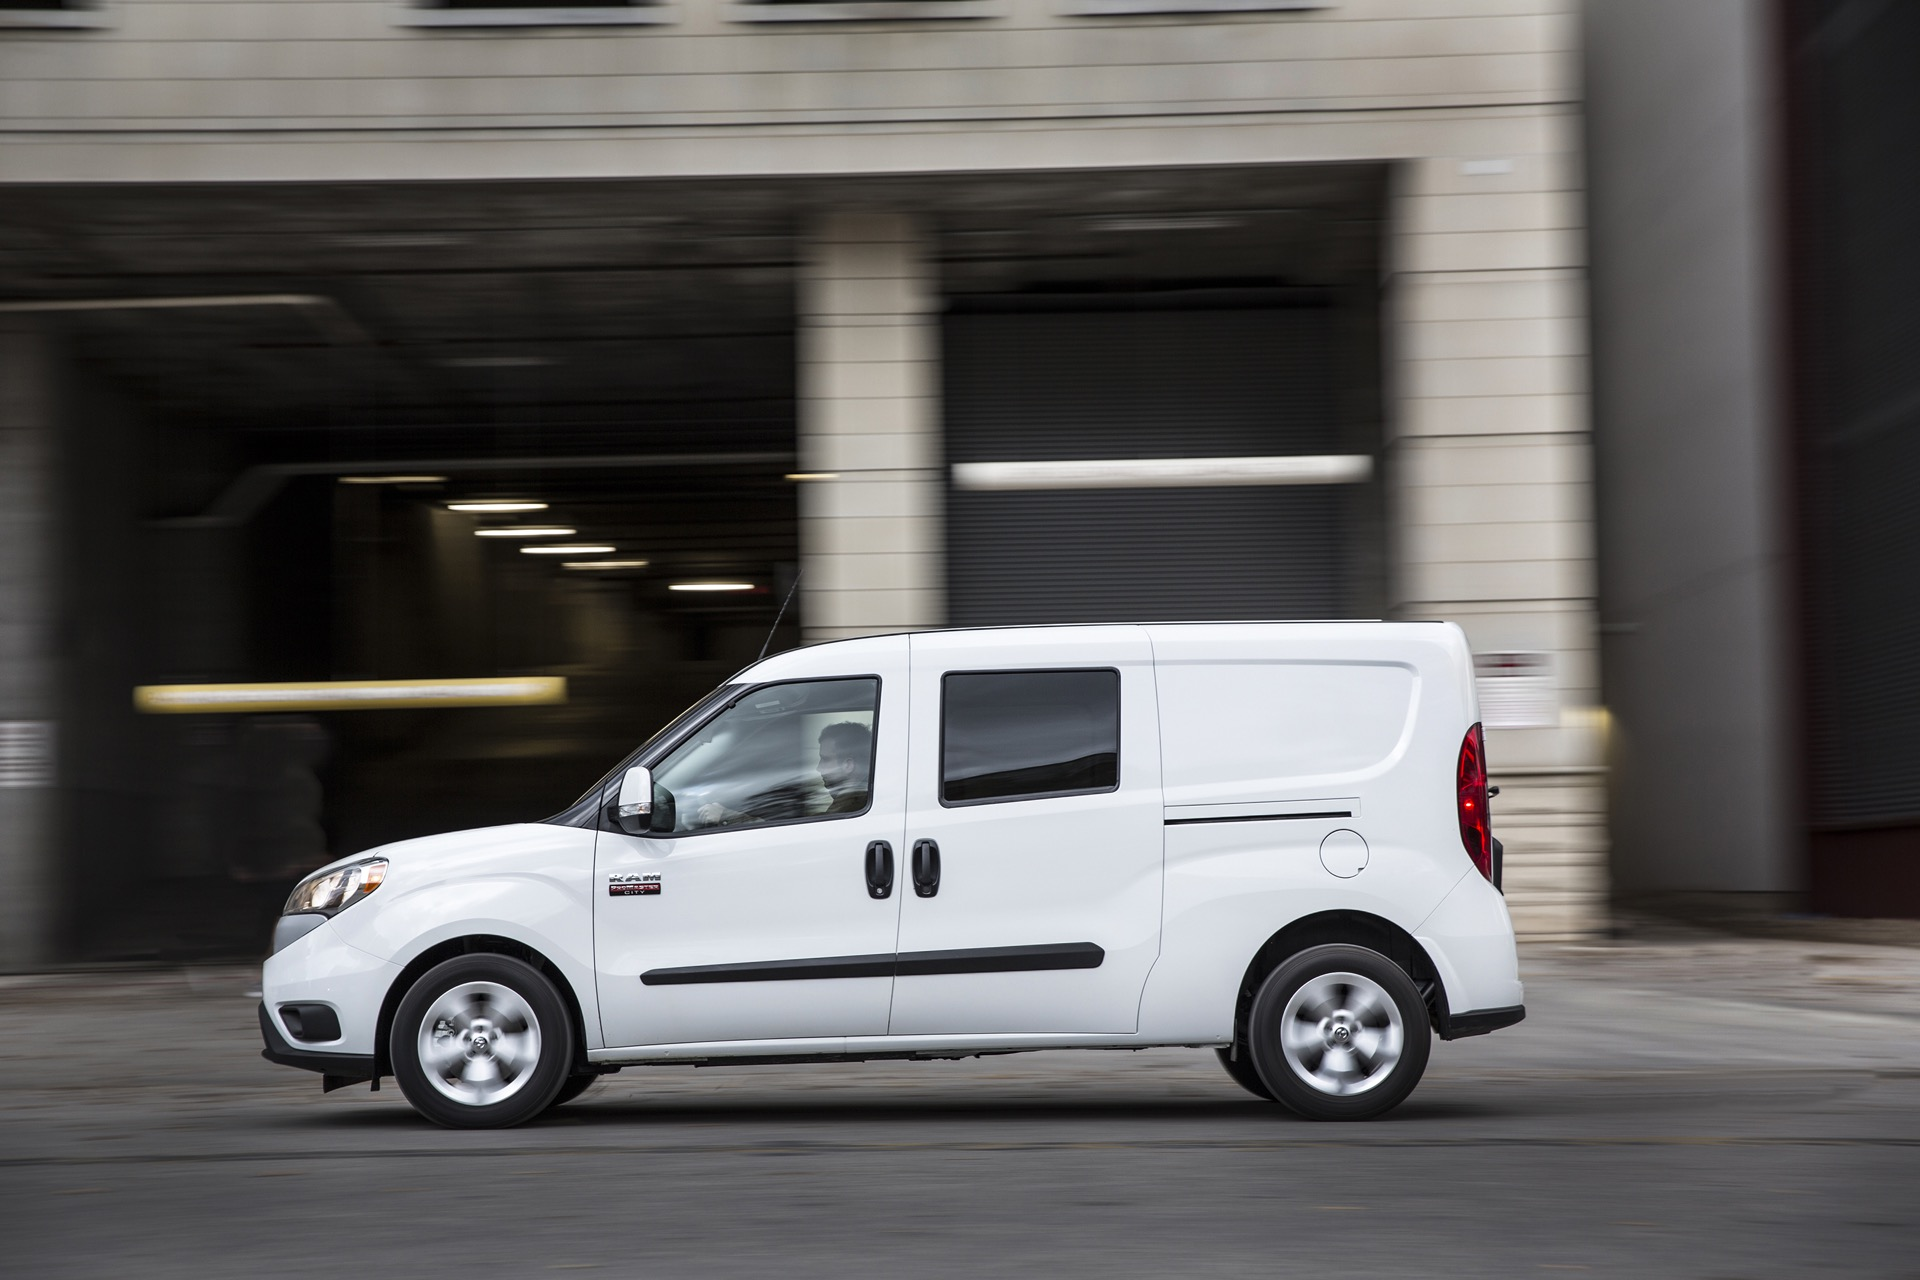 2016 ram promaster city review ratings specs prices and photos the car connection. Black Bedroom Furniture Sets. Home Design Ideas